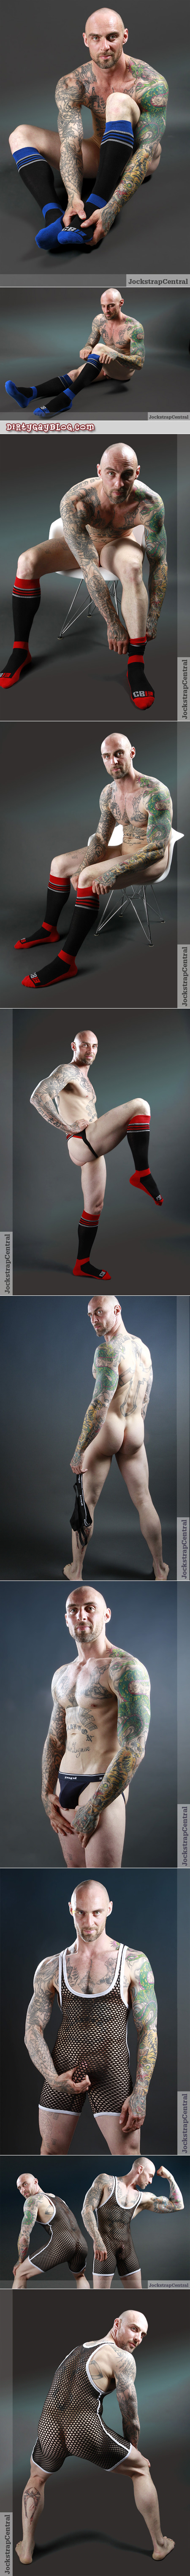 Muscular man with a shaved head and lots of tattoos modeling new and unusual jockstraps, underwear and OTC athletic socks.